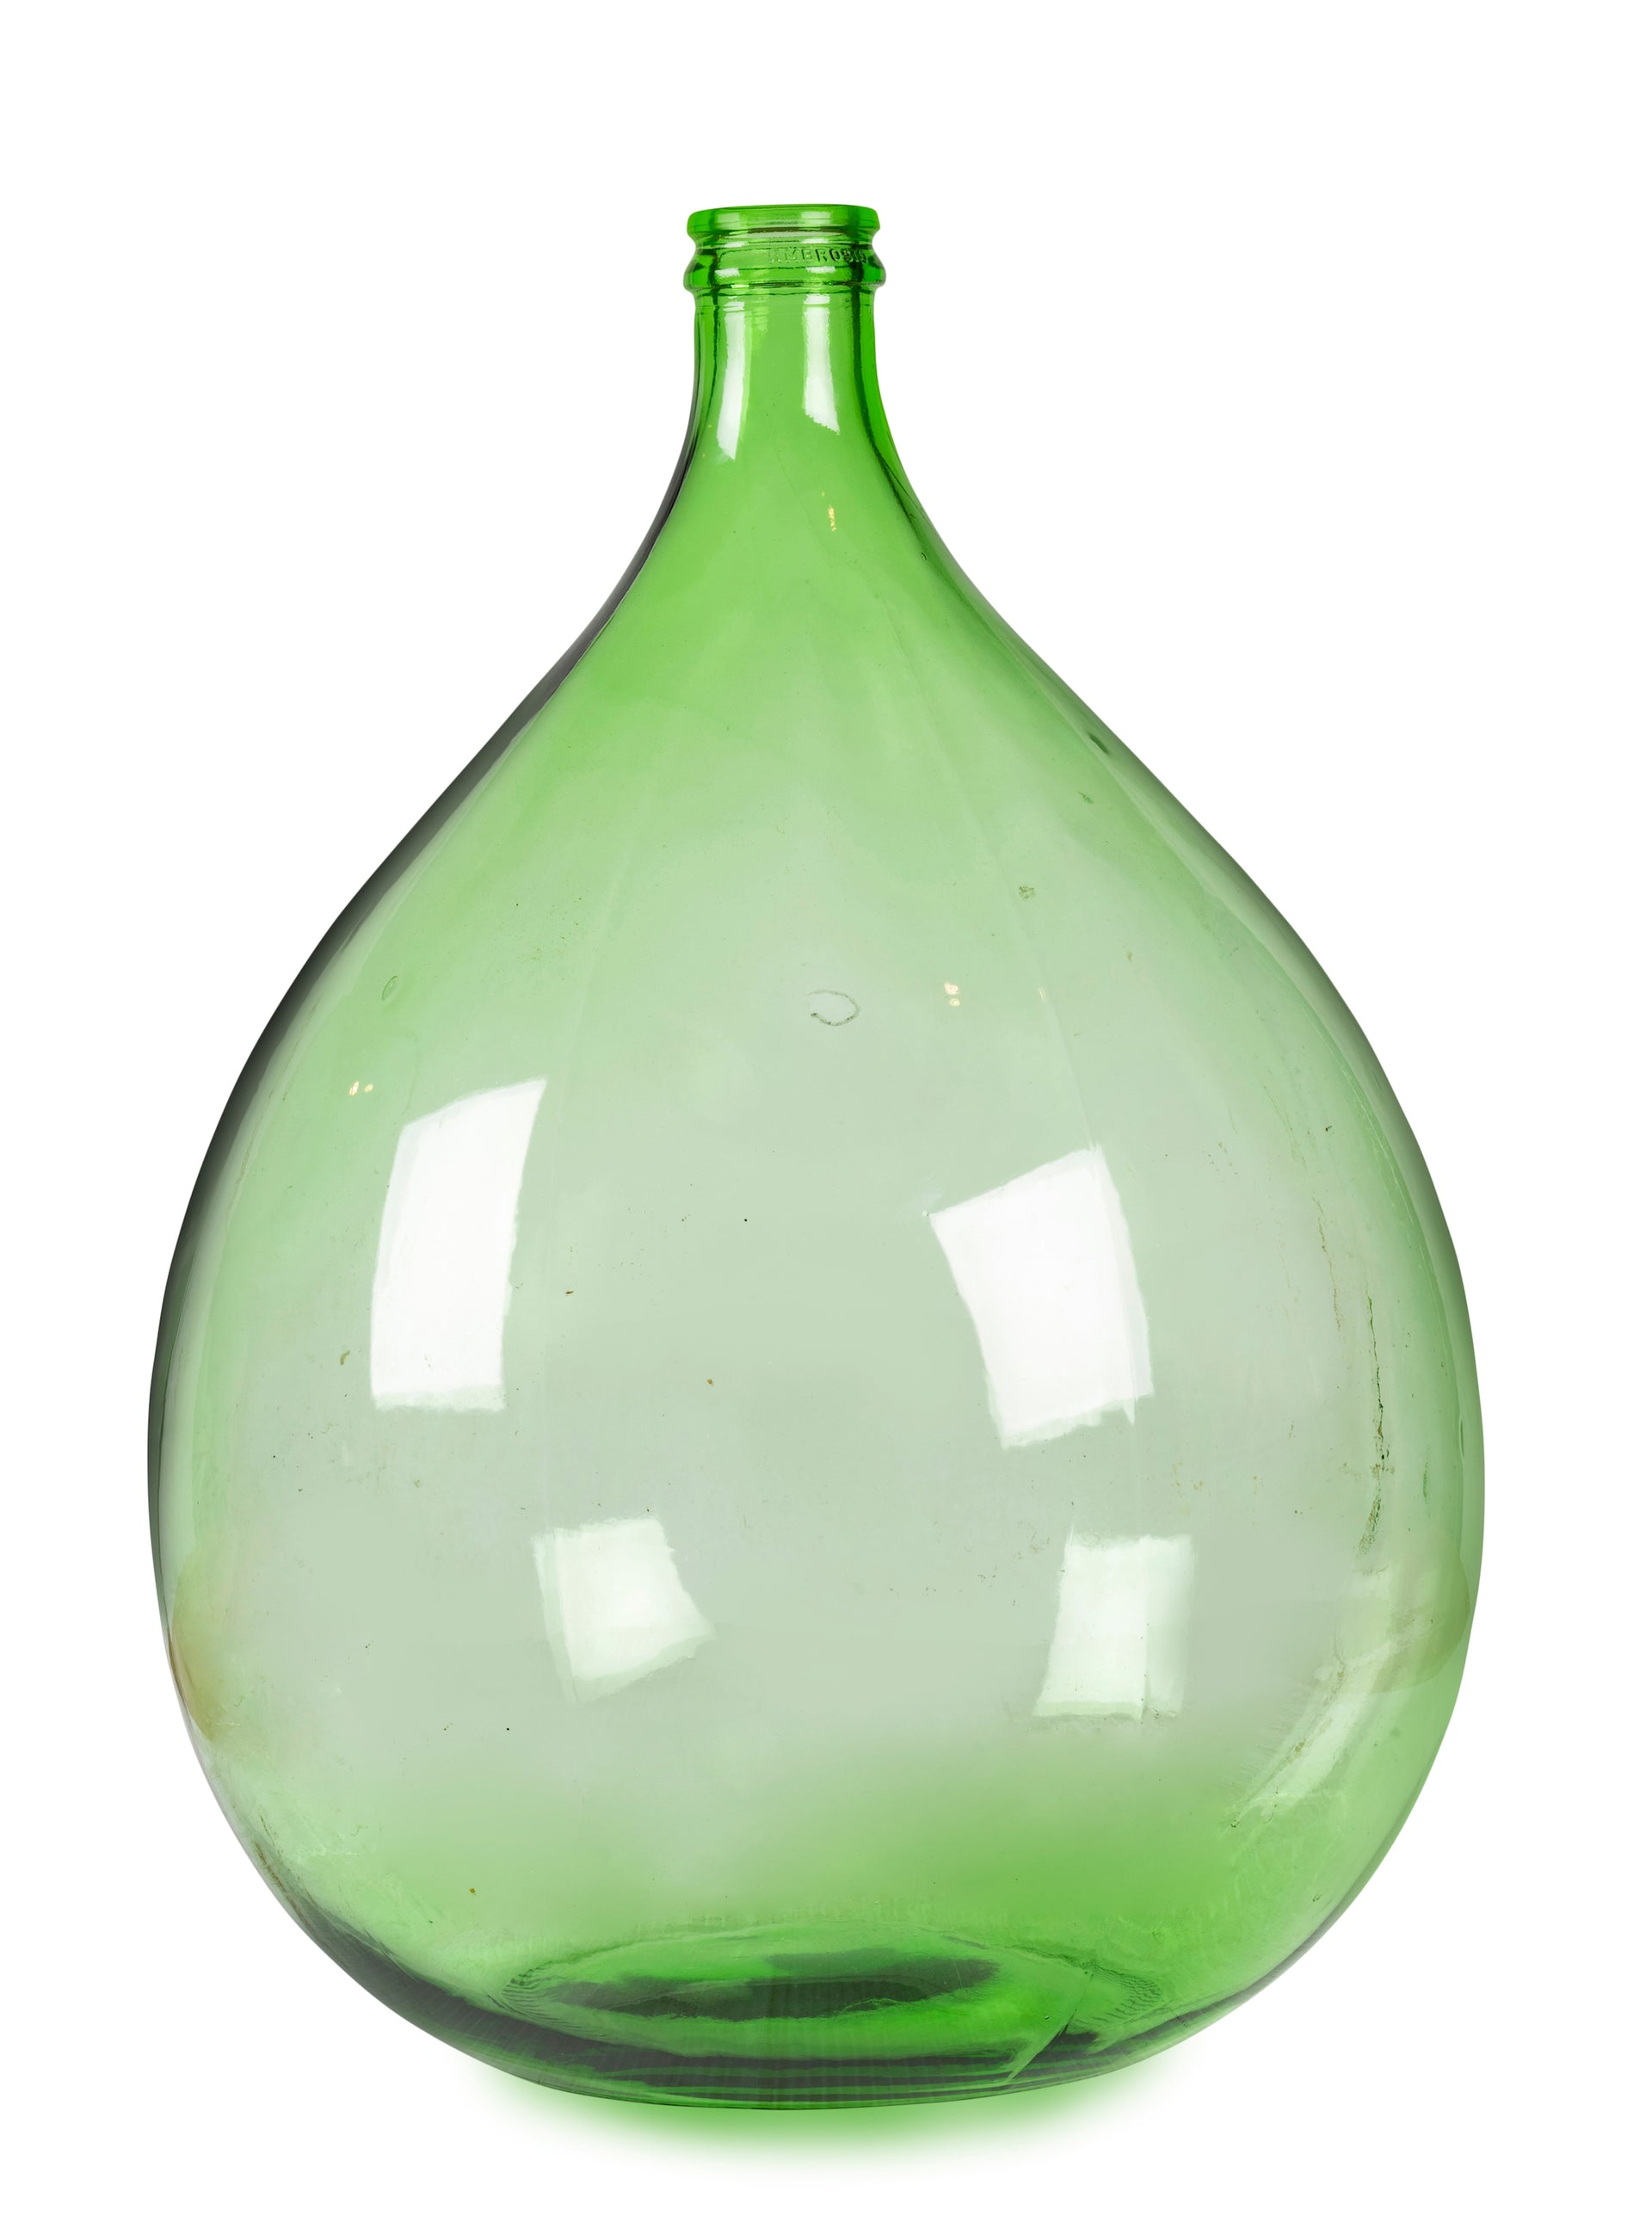 An Italian vintage green glass demi-john